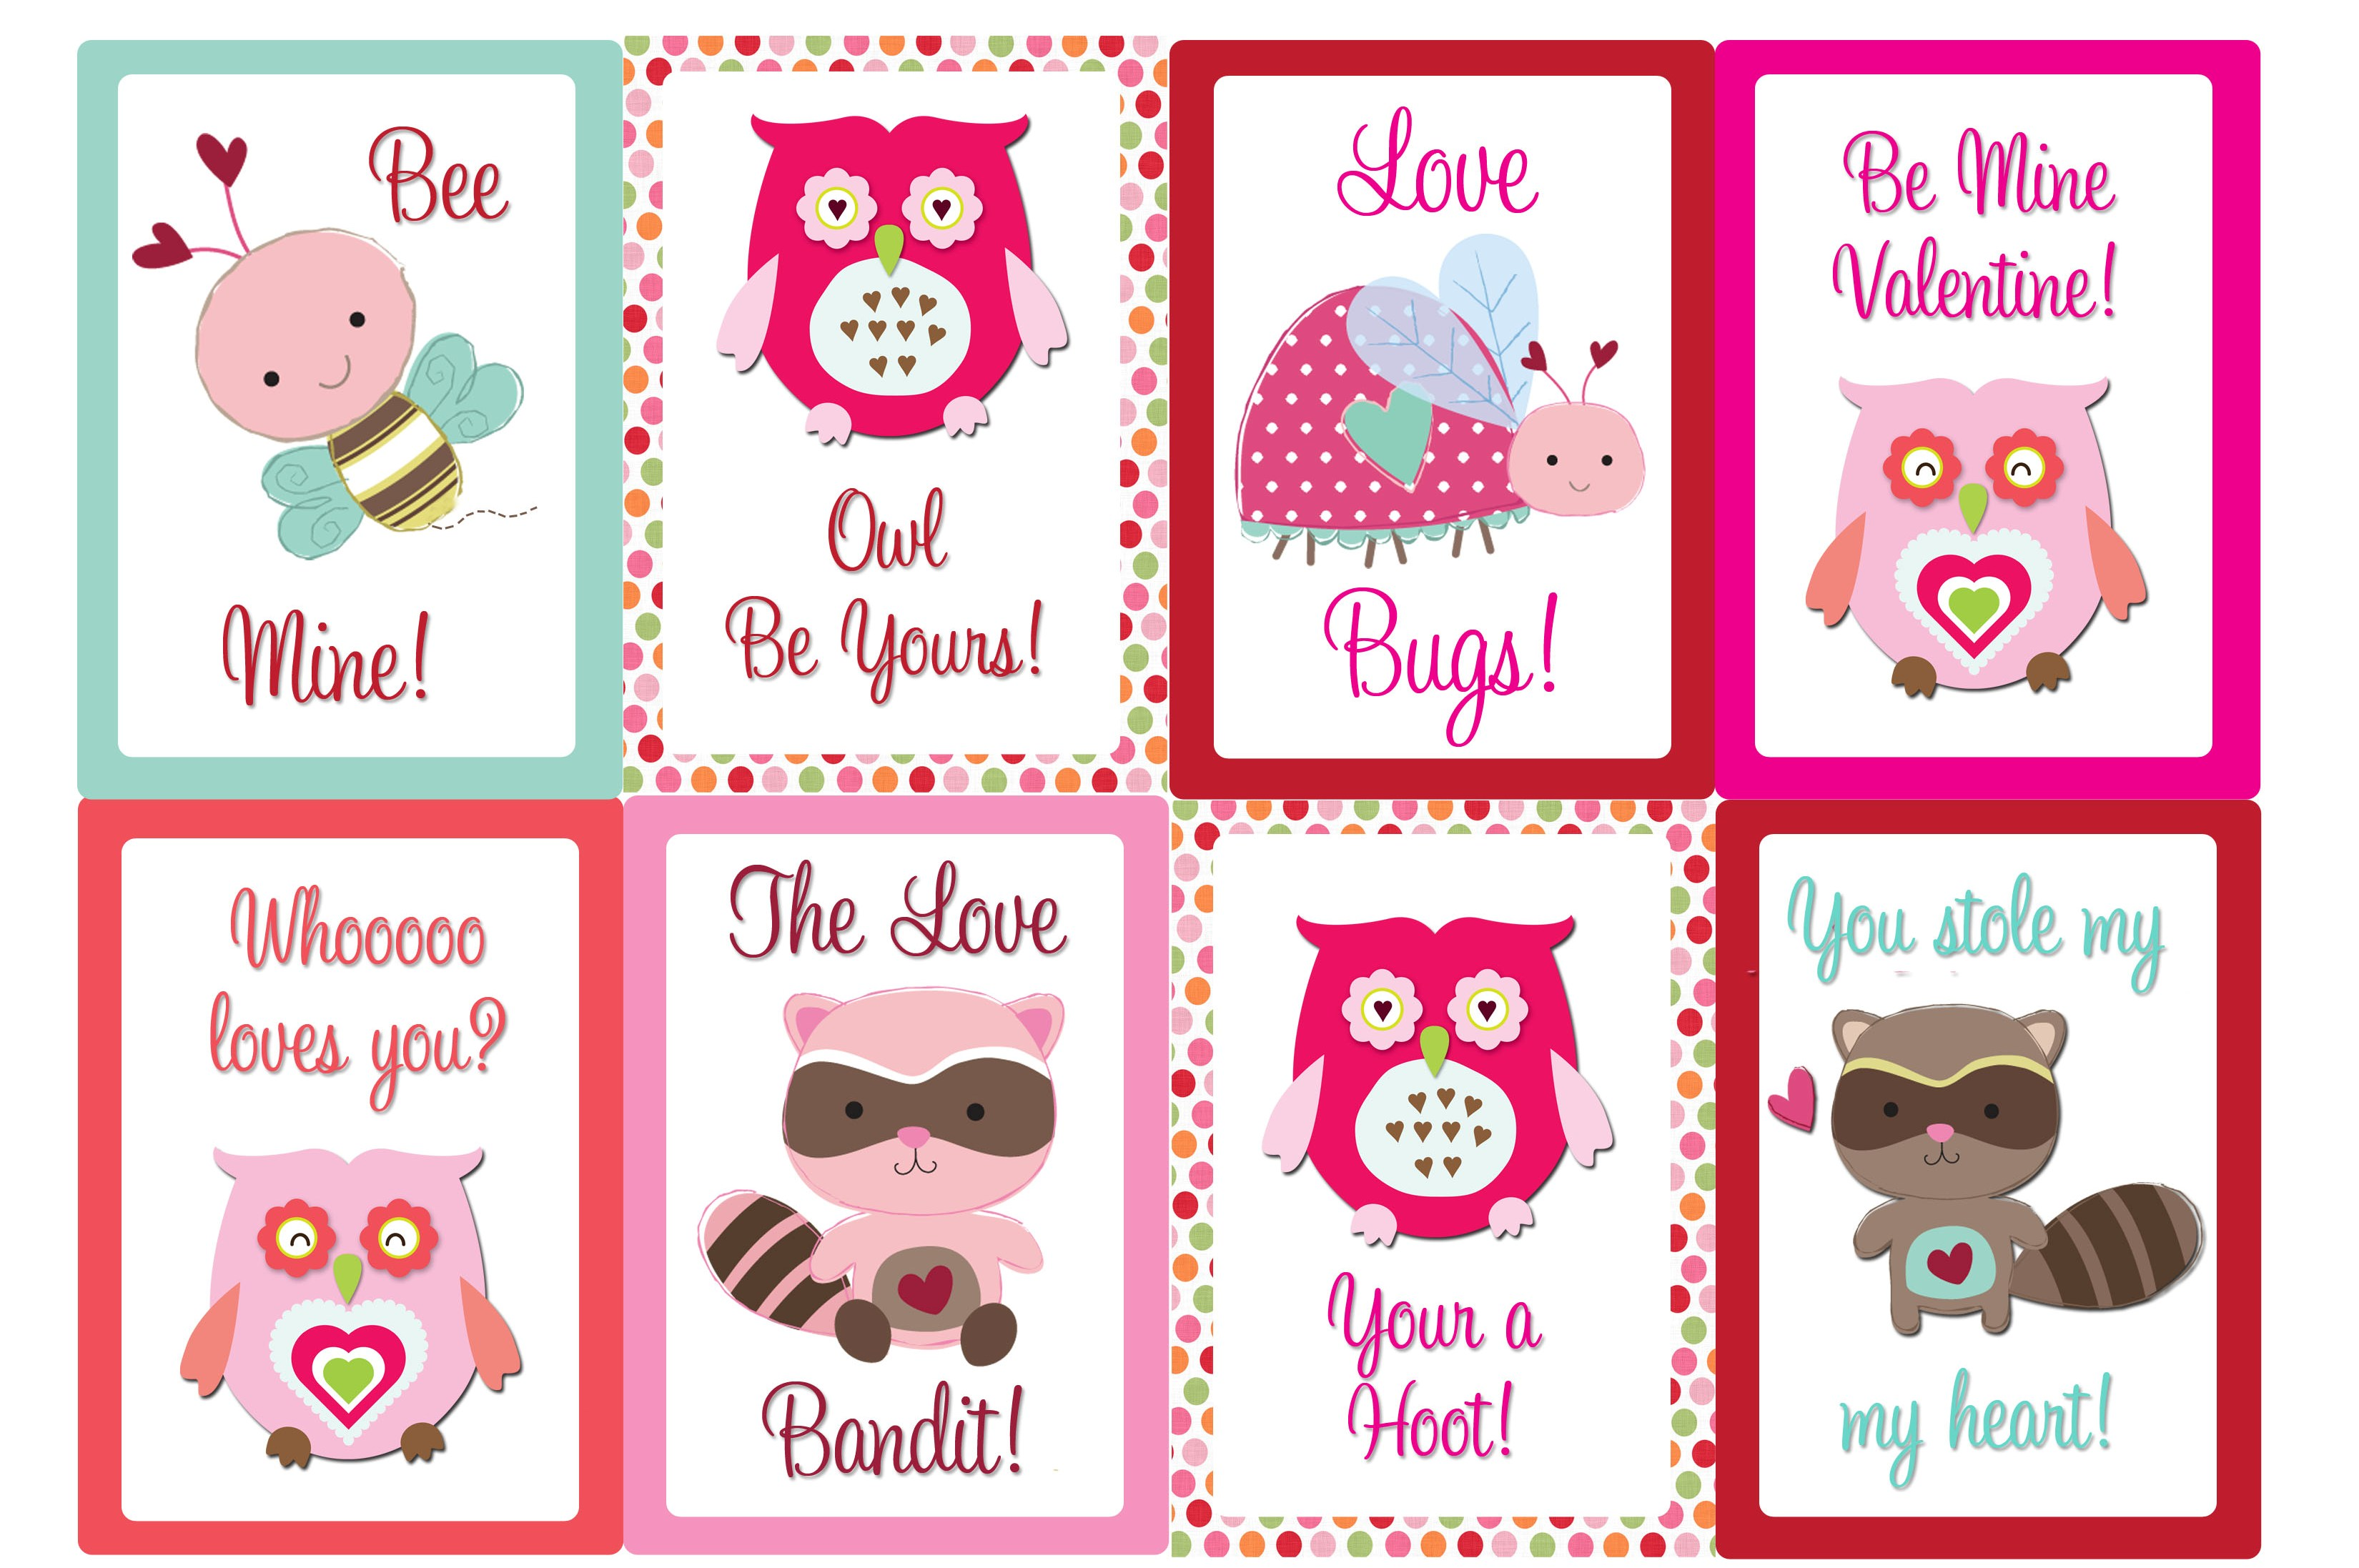 Free Valentine Printables 29 Cool Wallpaper Hdlovewall – Printable Childrens Valentines Cards